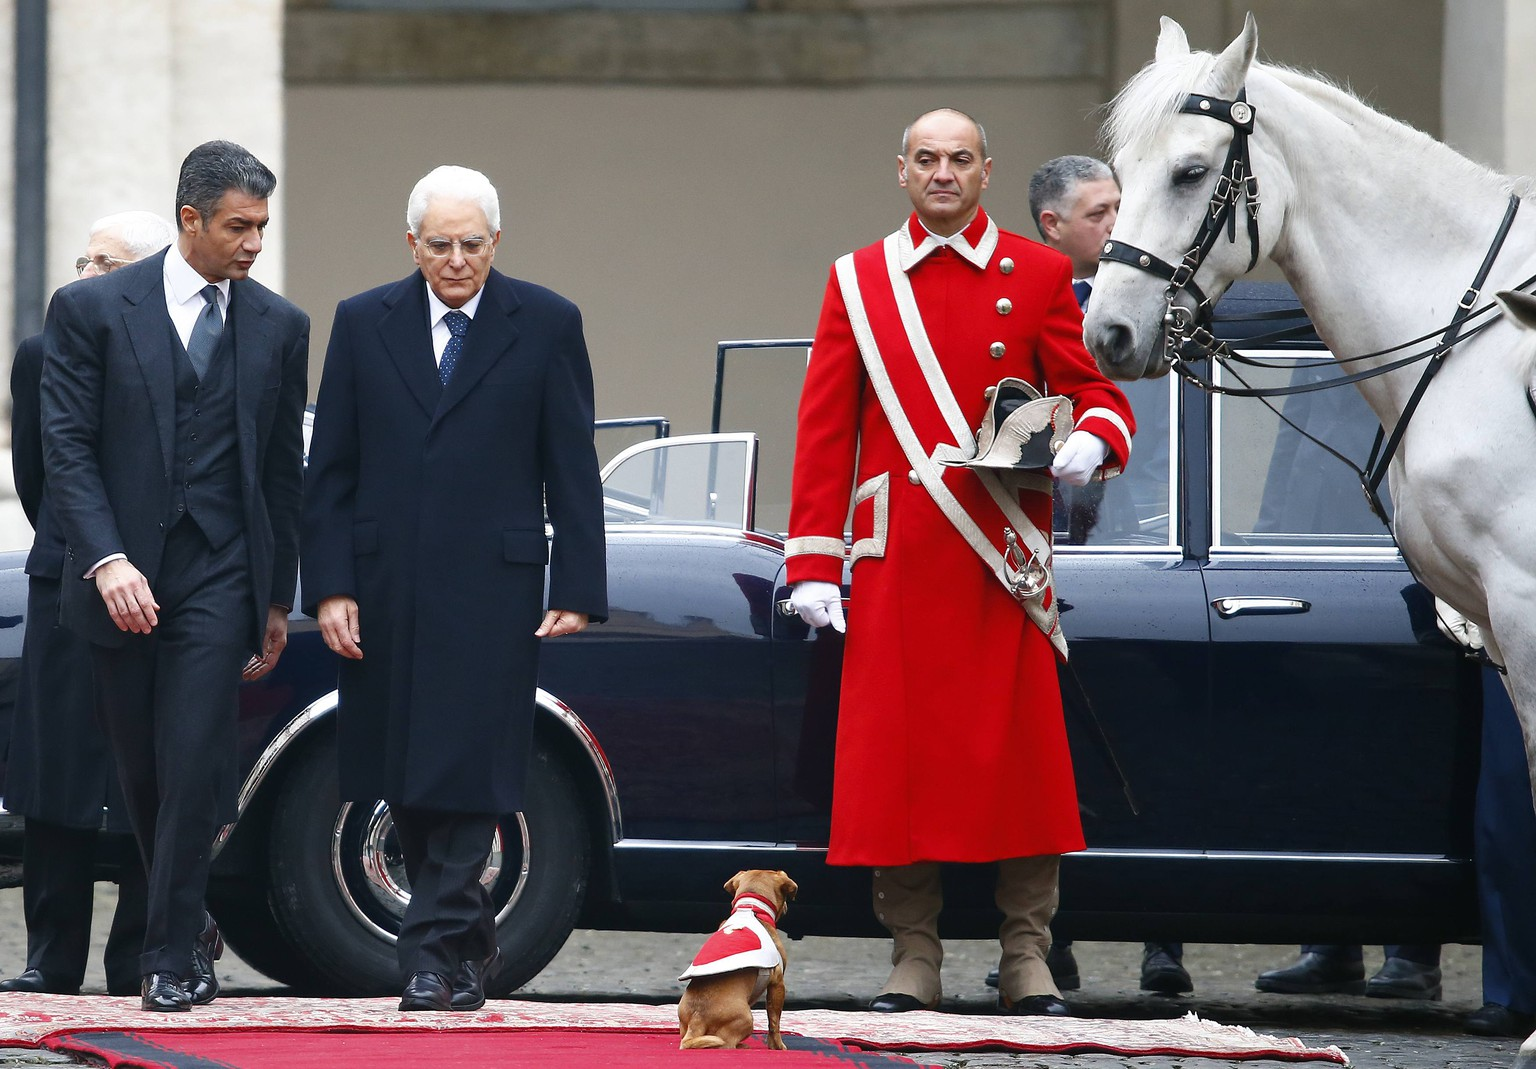 Italy's new President Sergio Mattarella (C) arrives to inspect a guard of honour during a welcoming ceremony, as the Presidential Guards' mascot dog sits on the red carpet, at the Quirinale presidential palace in Rome, February 3, 2015. REUTERS/Tony Gentile (ITALY - Tags: POLITICS TPX IMAGES OF THE DAY)